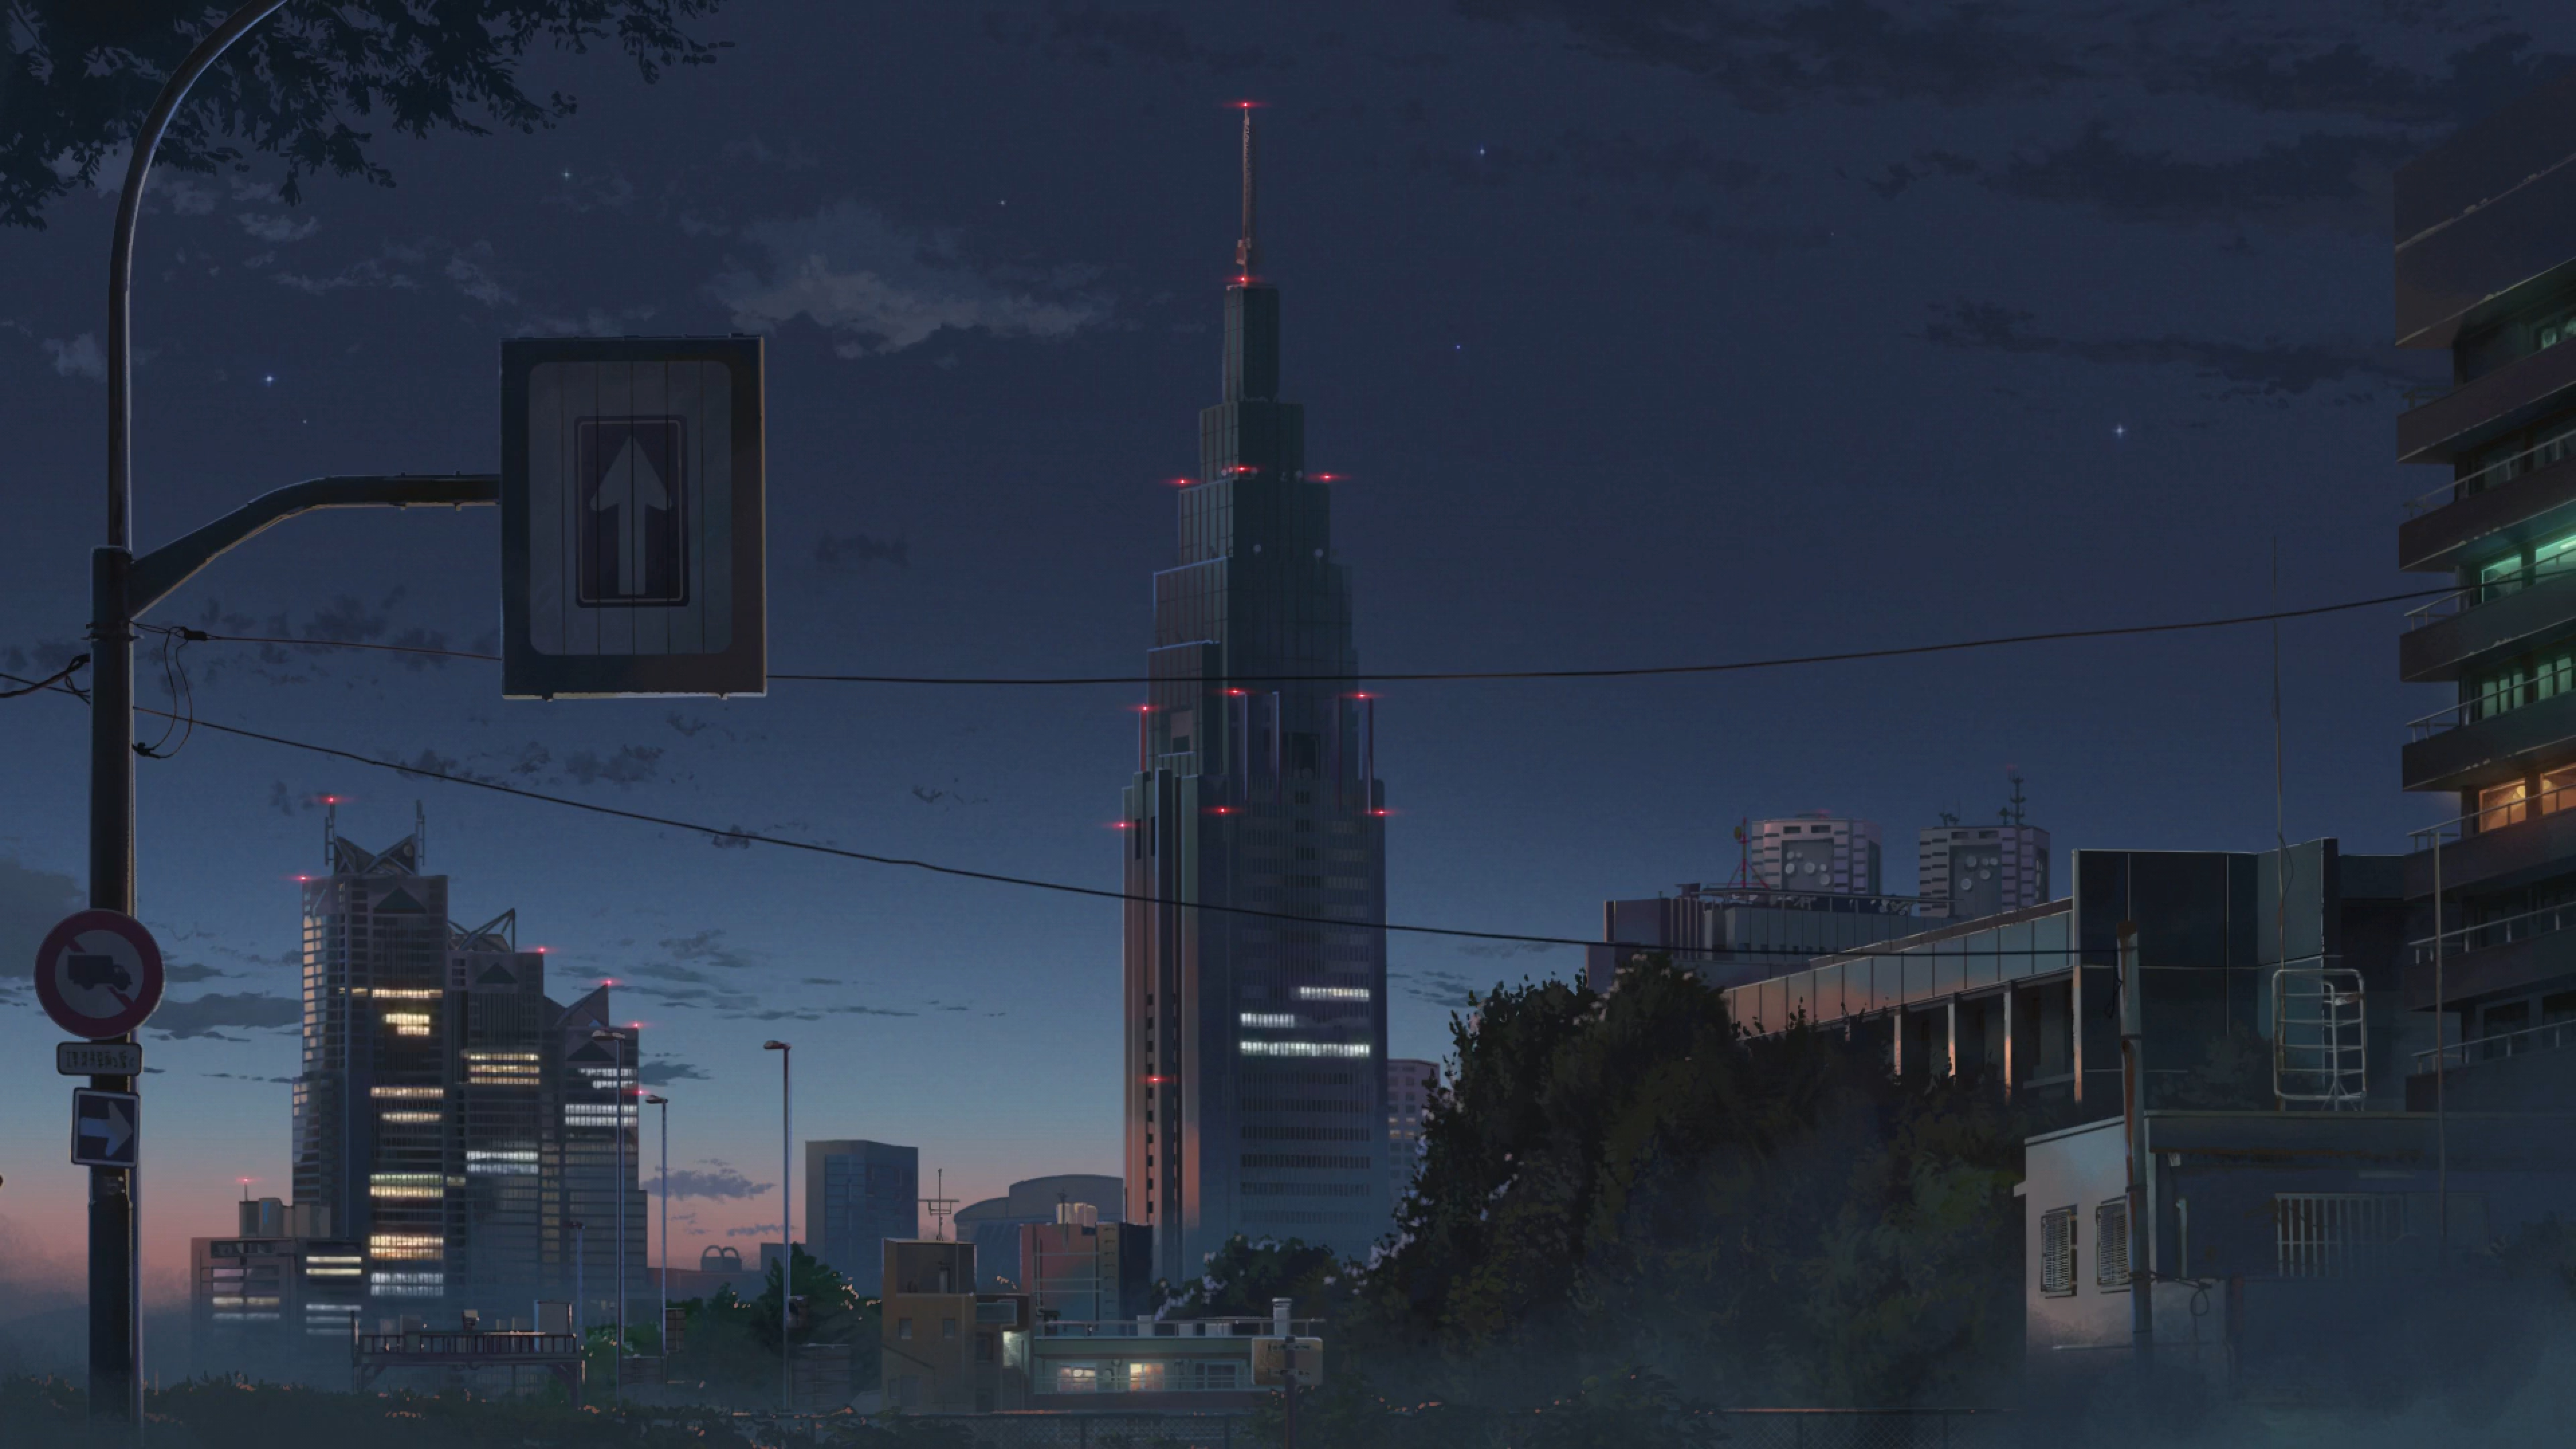 3840x2160 Kimi No Na Wa Anime City 4k Wallpaper Hd Anime 4k Wallpapers Images Photos And Background